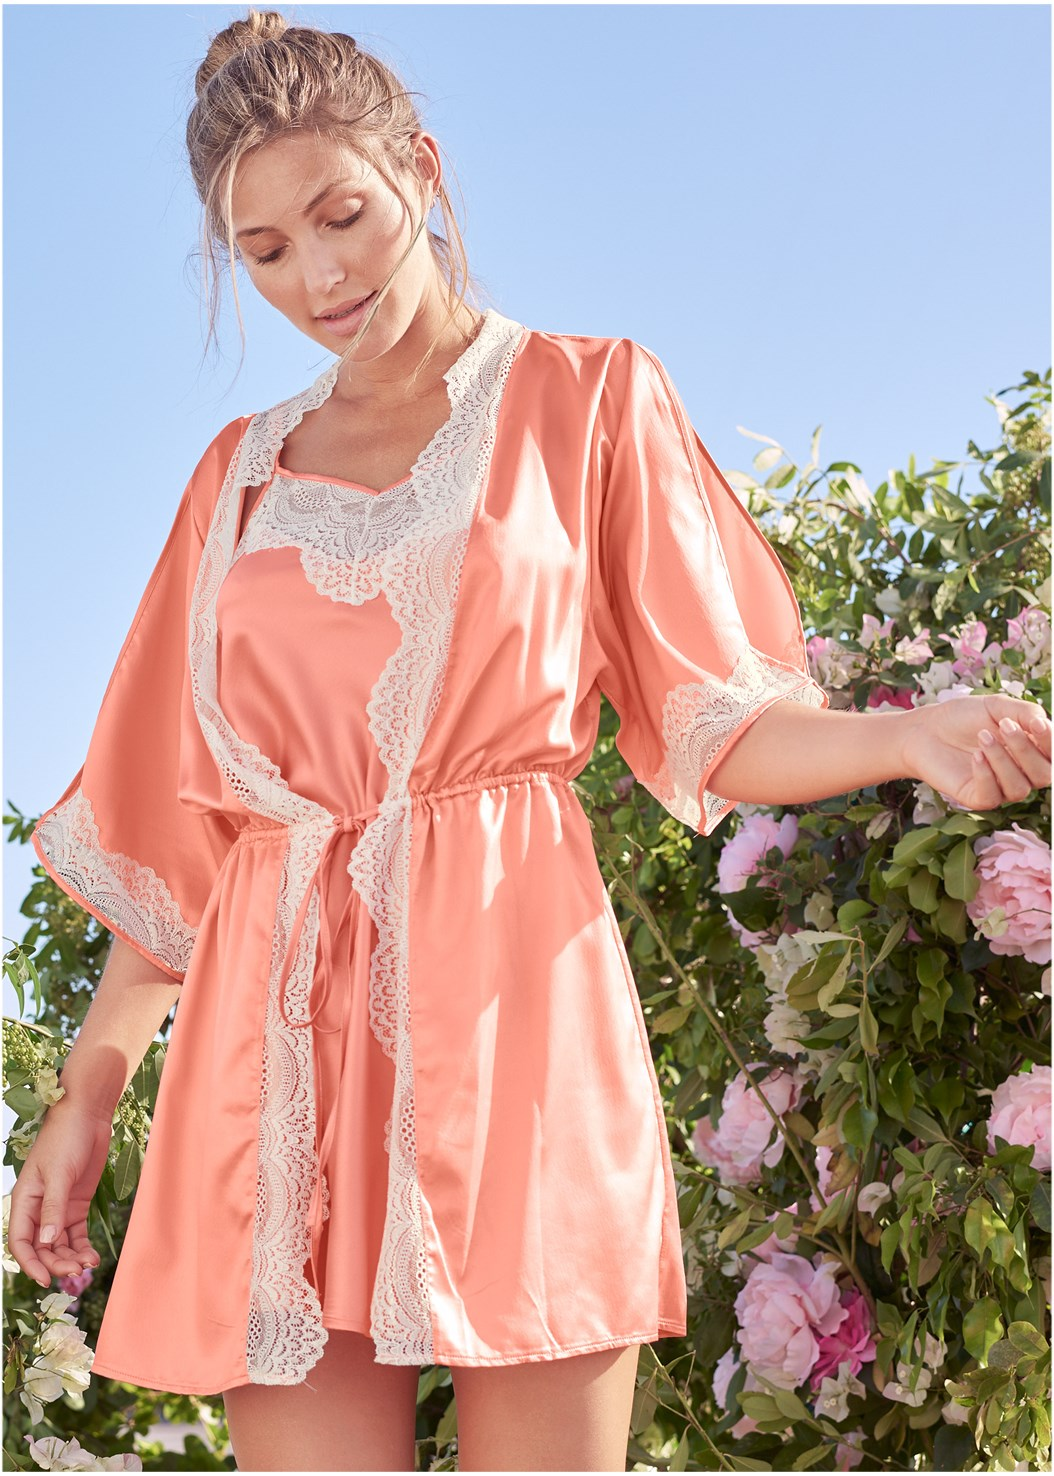 Lace Detail Kimono,Lace Detail Sleep Dress,Push Up Bra Buy 2 For $40,Lace Thong 3 For $19